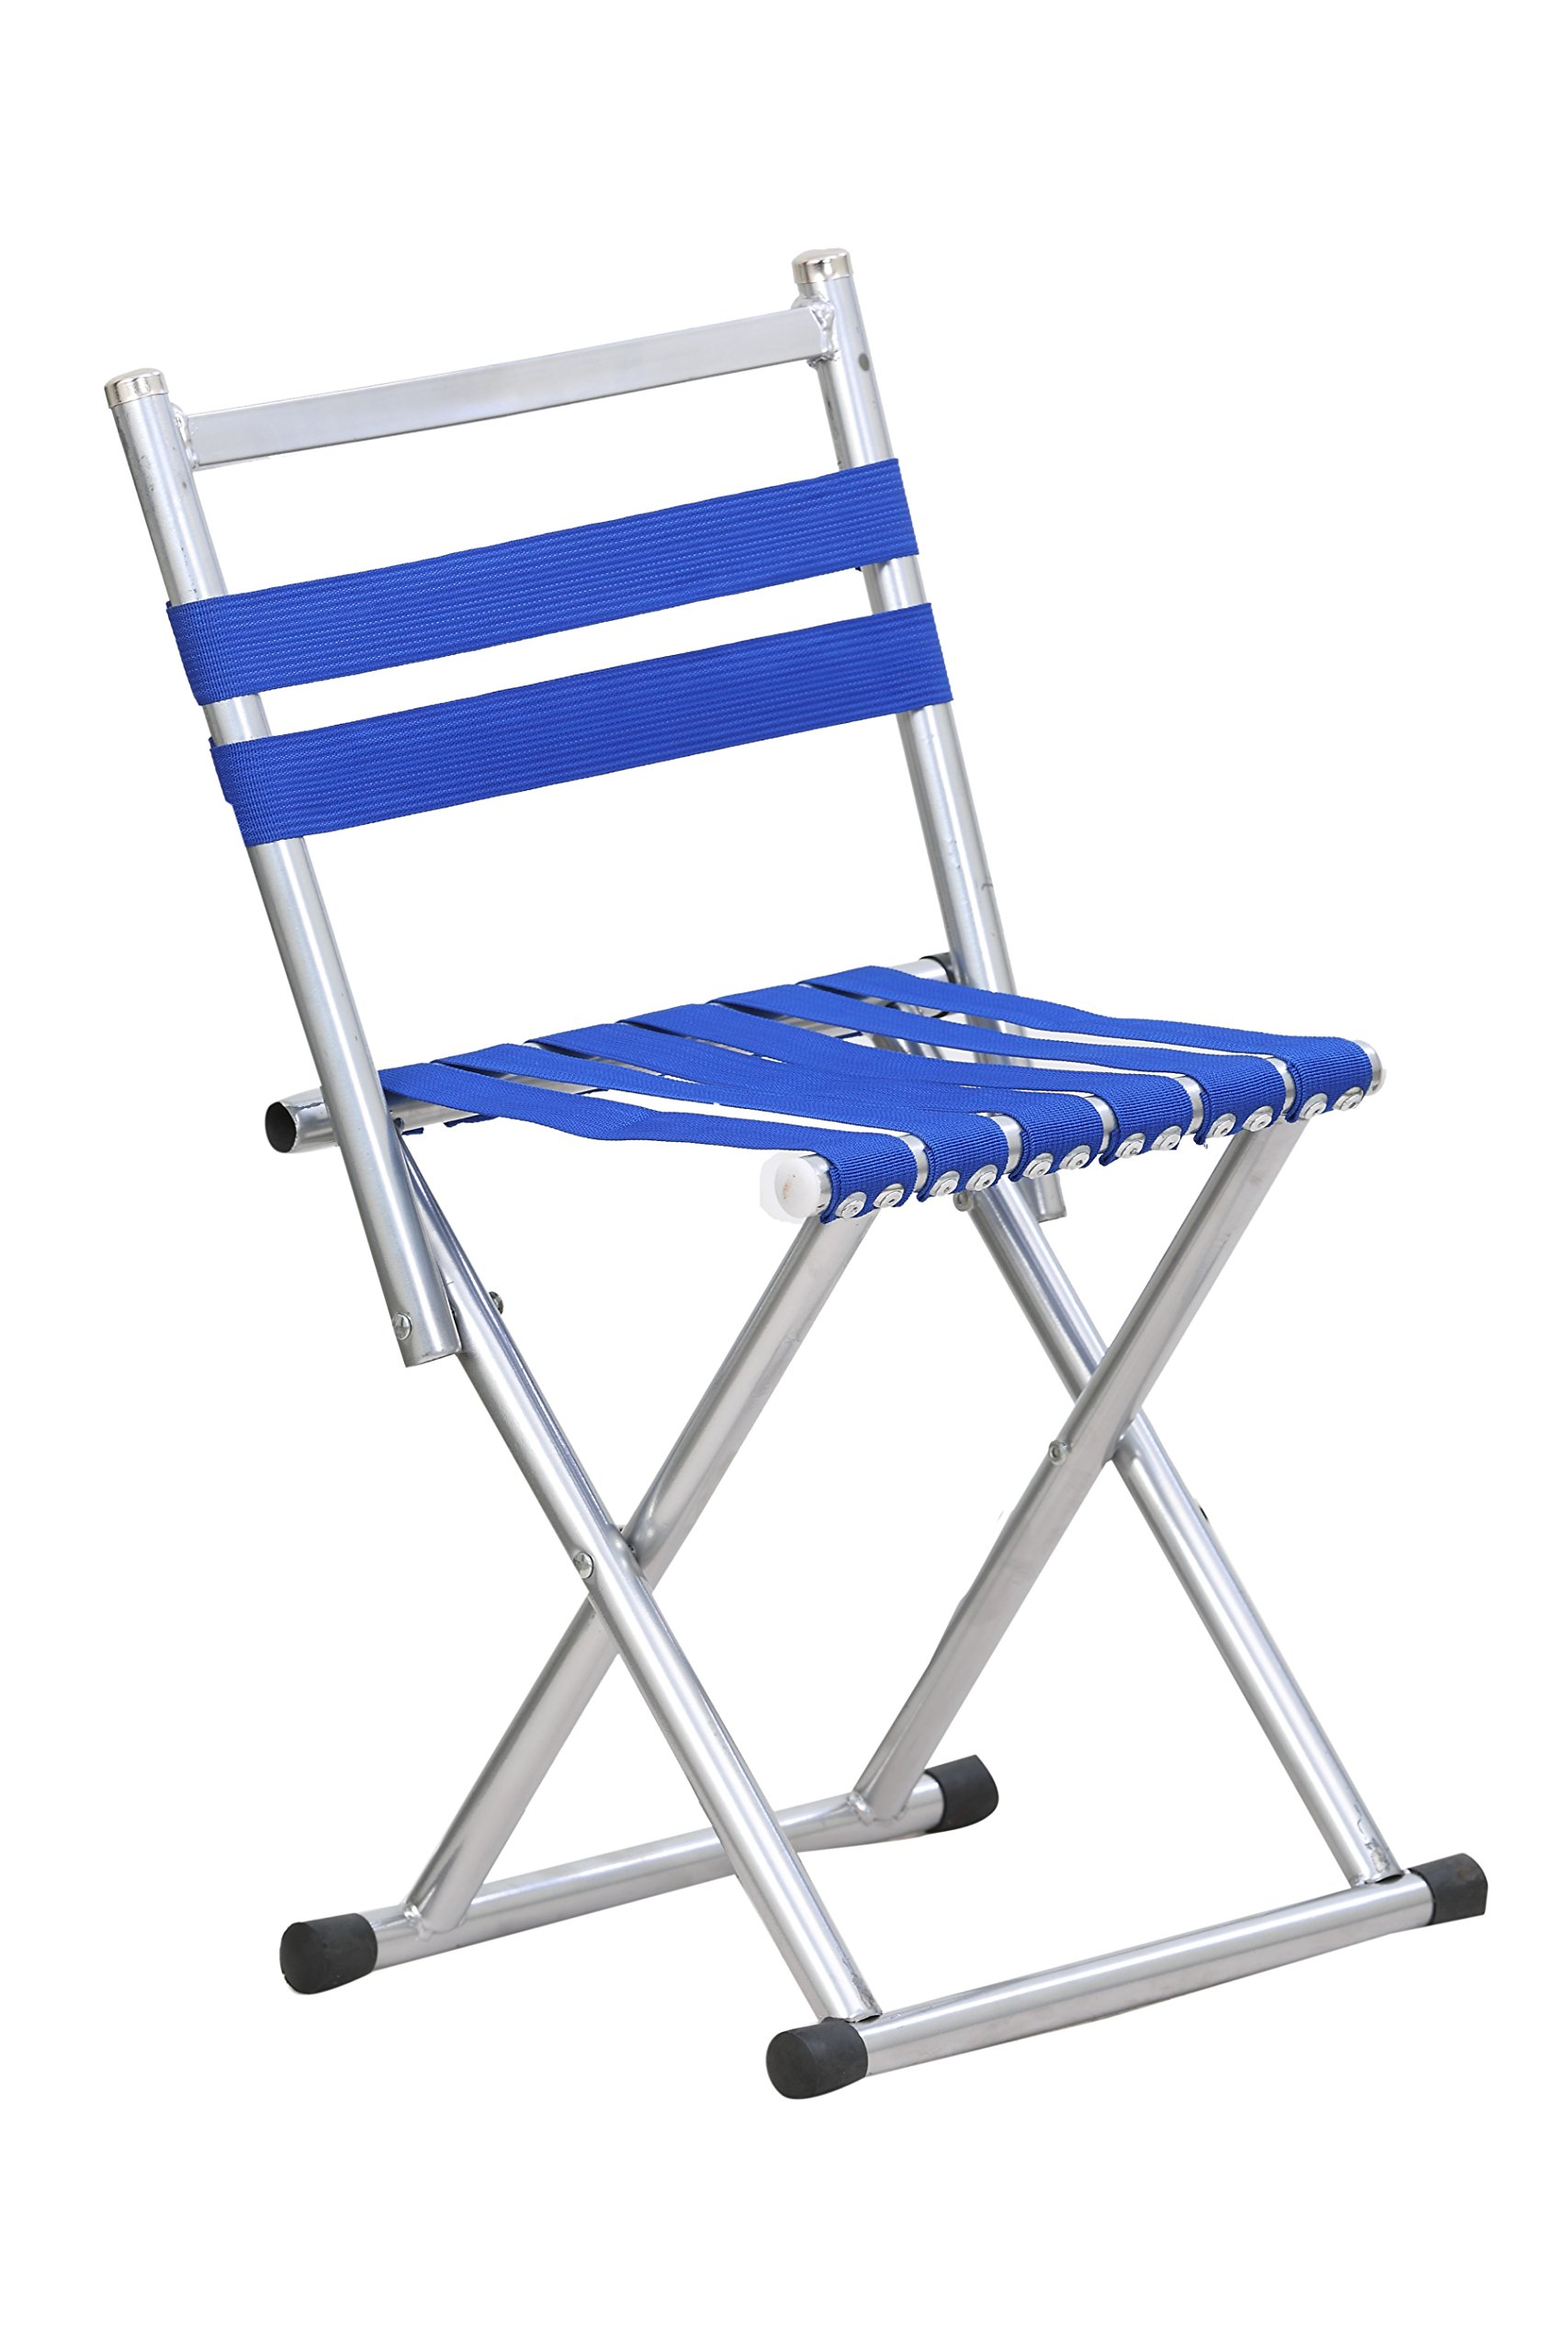 folding chair buy folding chair online at best prices in india